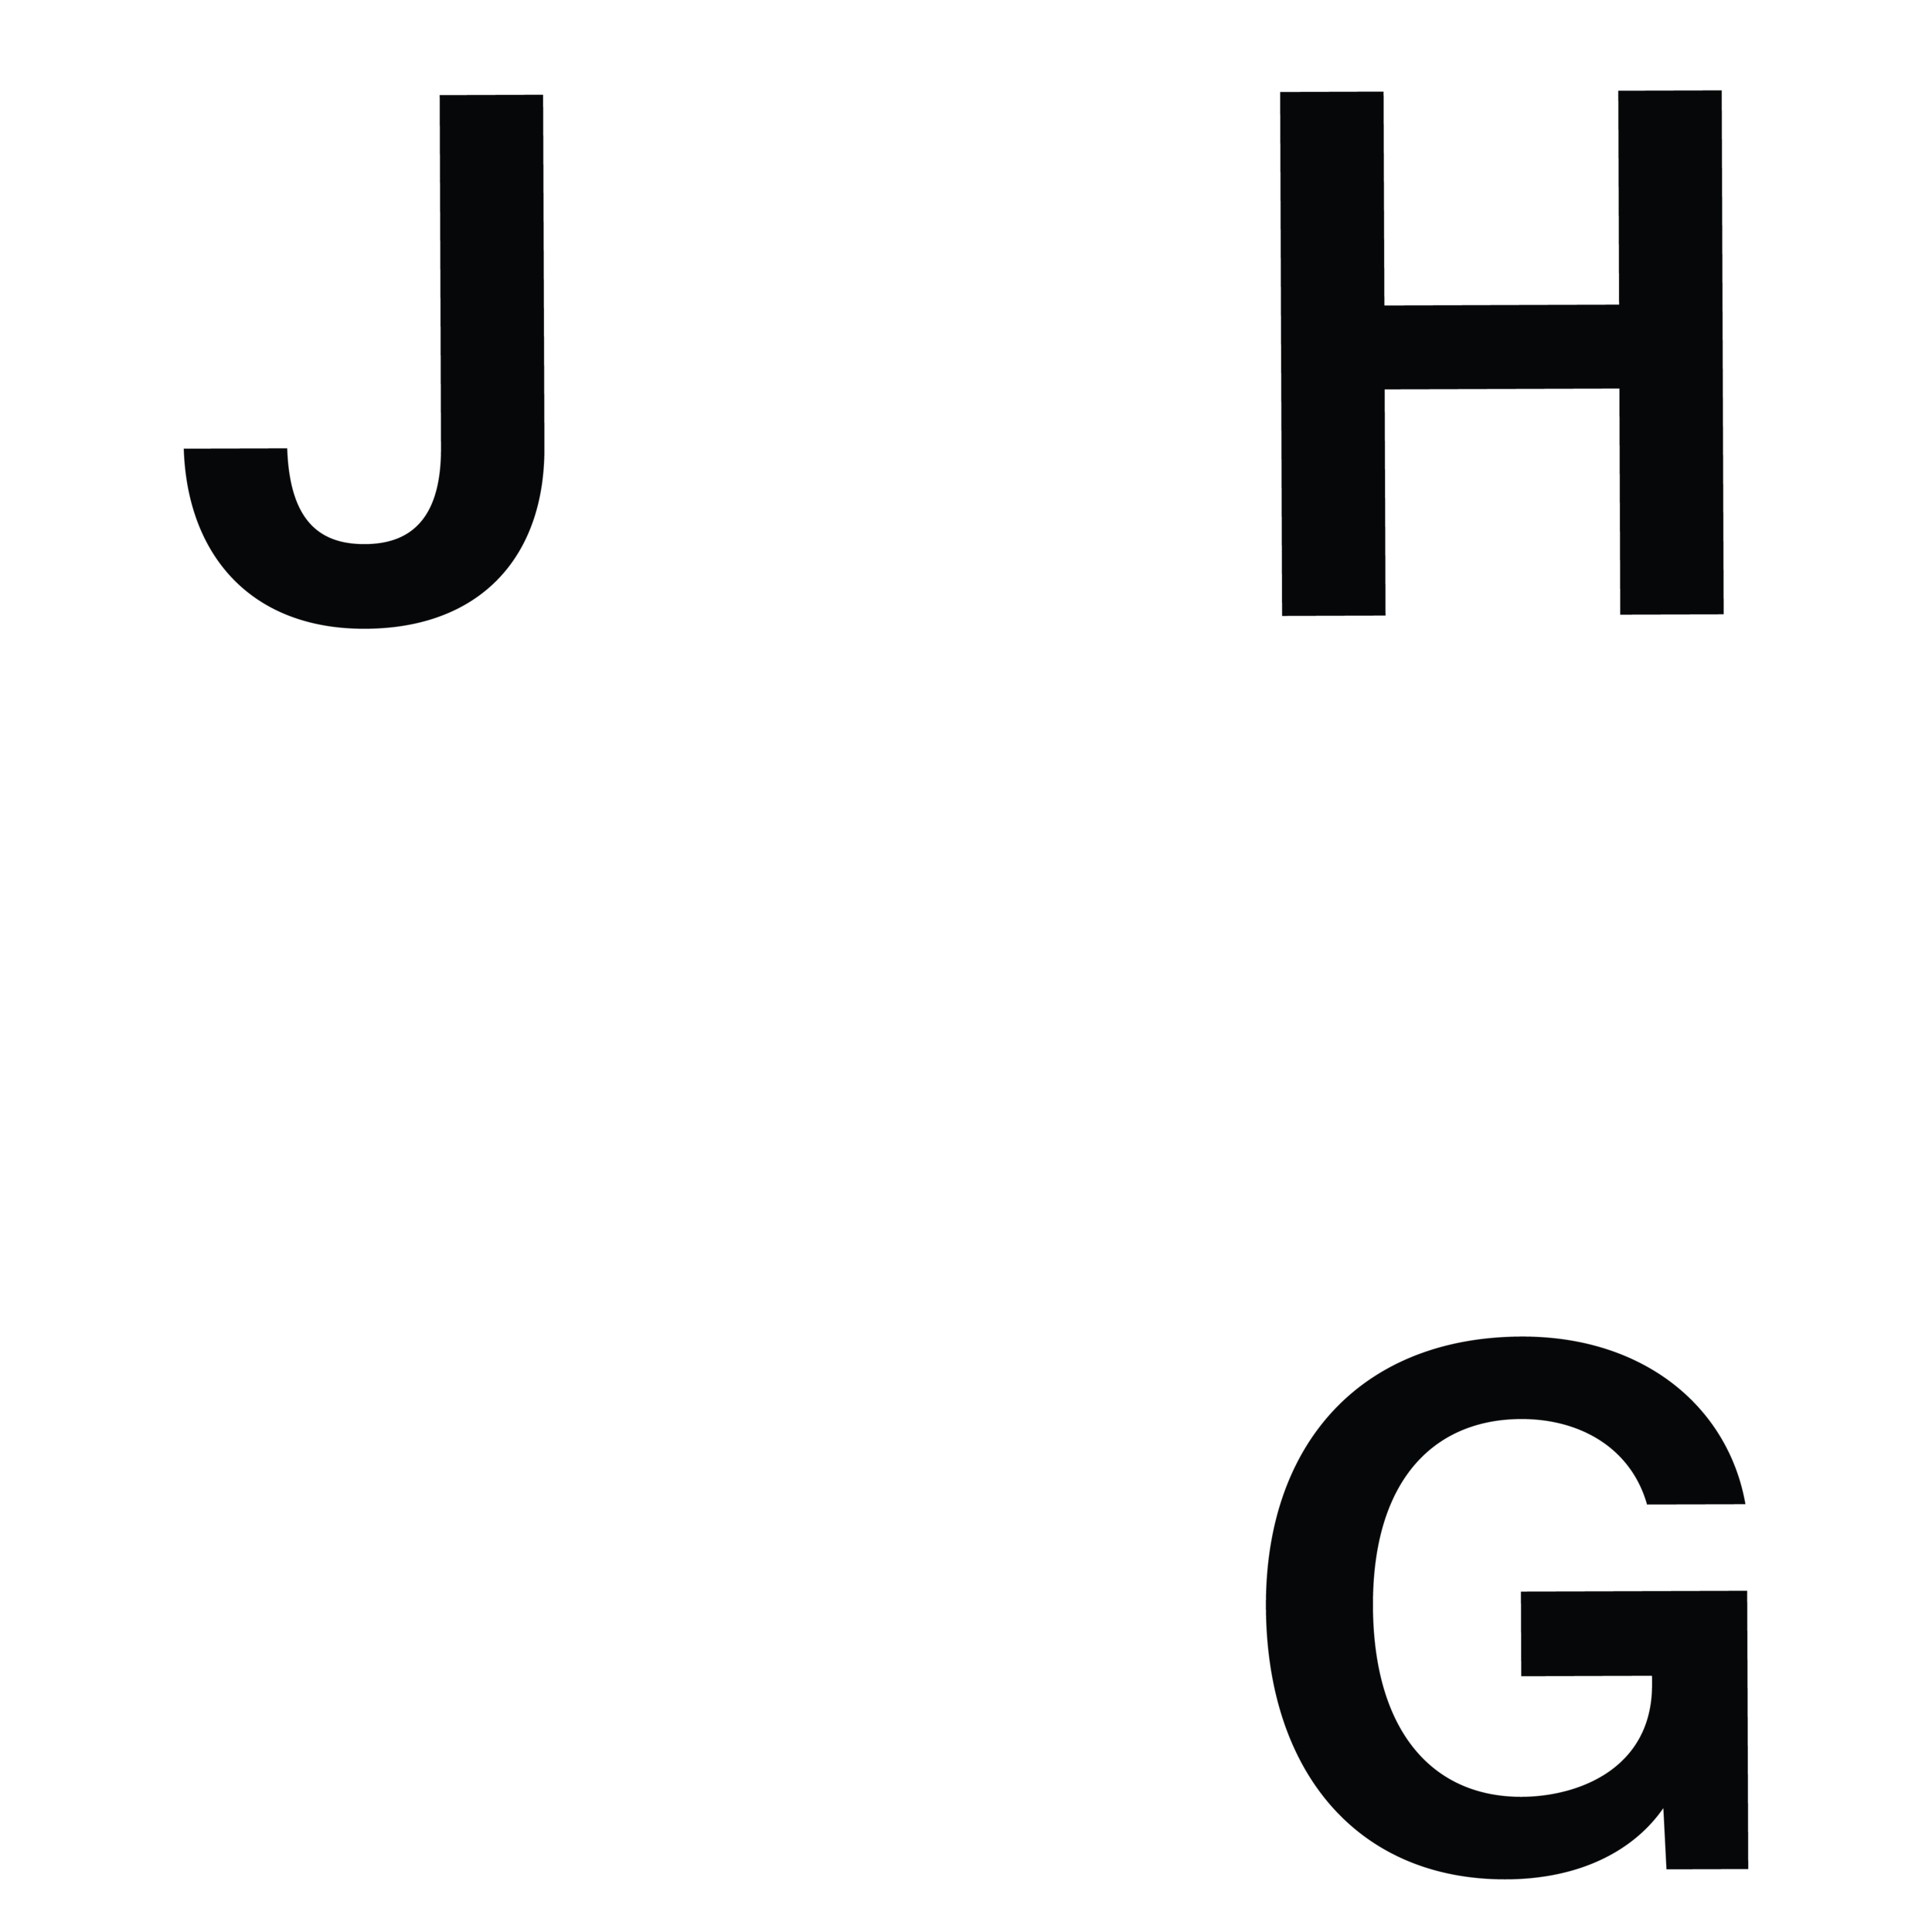 JHG-01.png